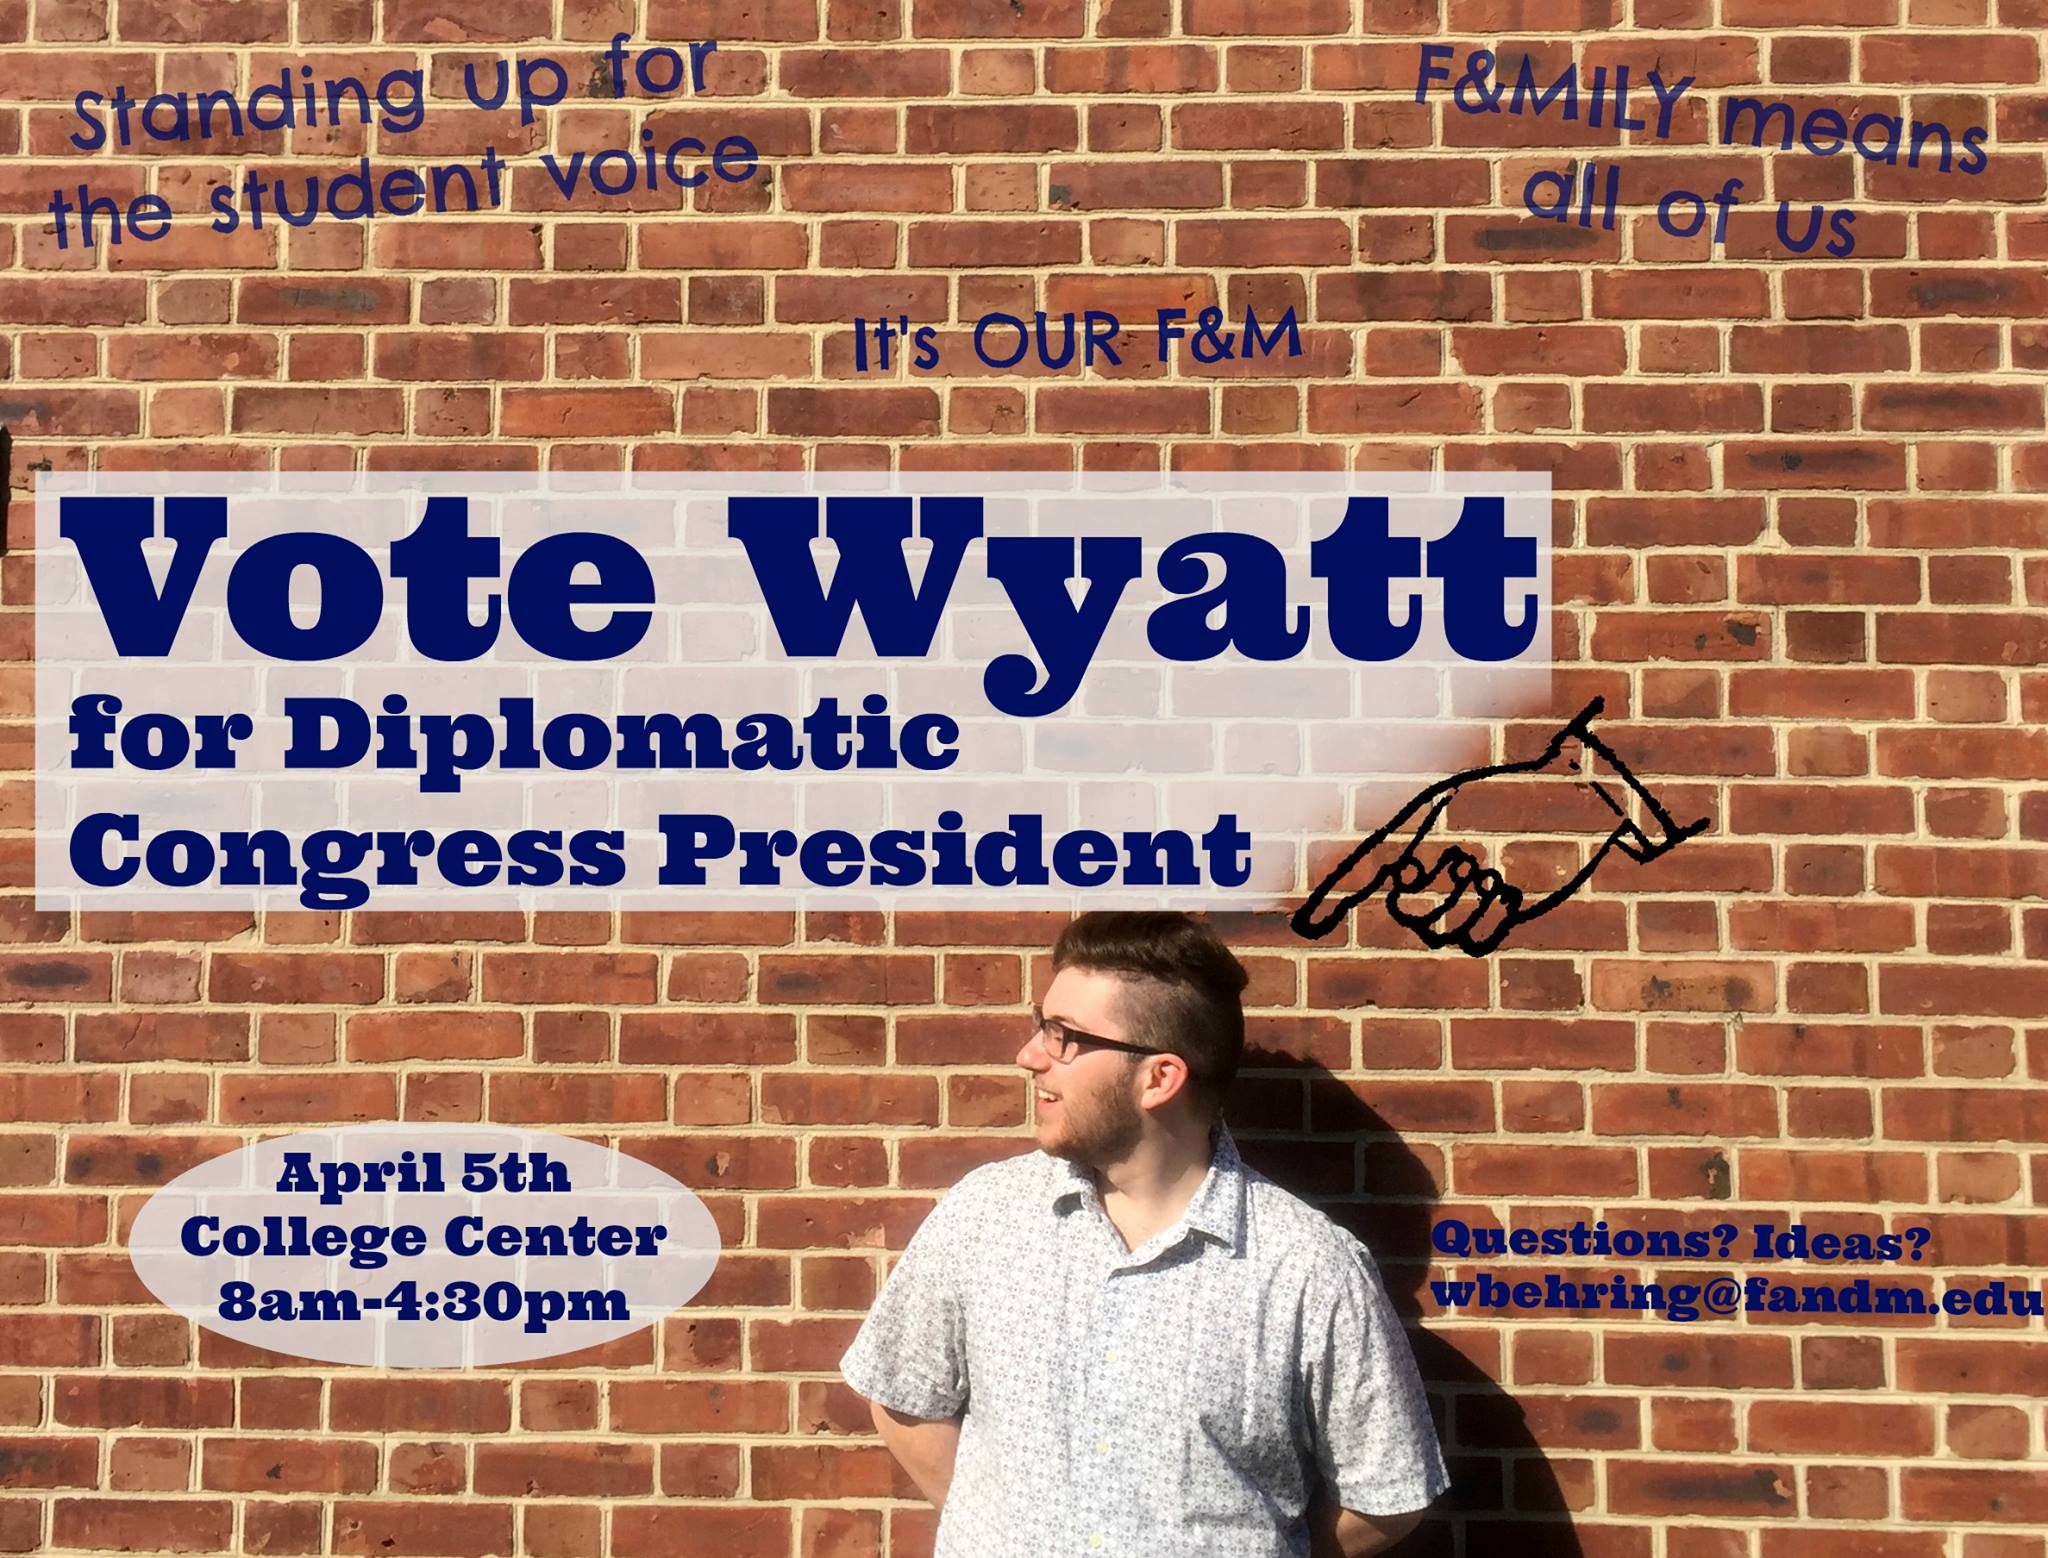 Wyatt Behringer '18 was elected president of the Diplomatic Congress. He campaigned by using social media to broadcast his messages to students.